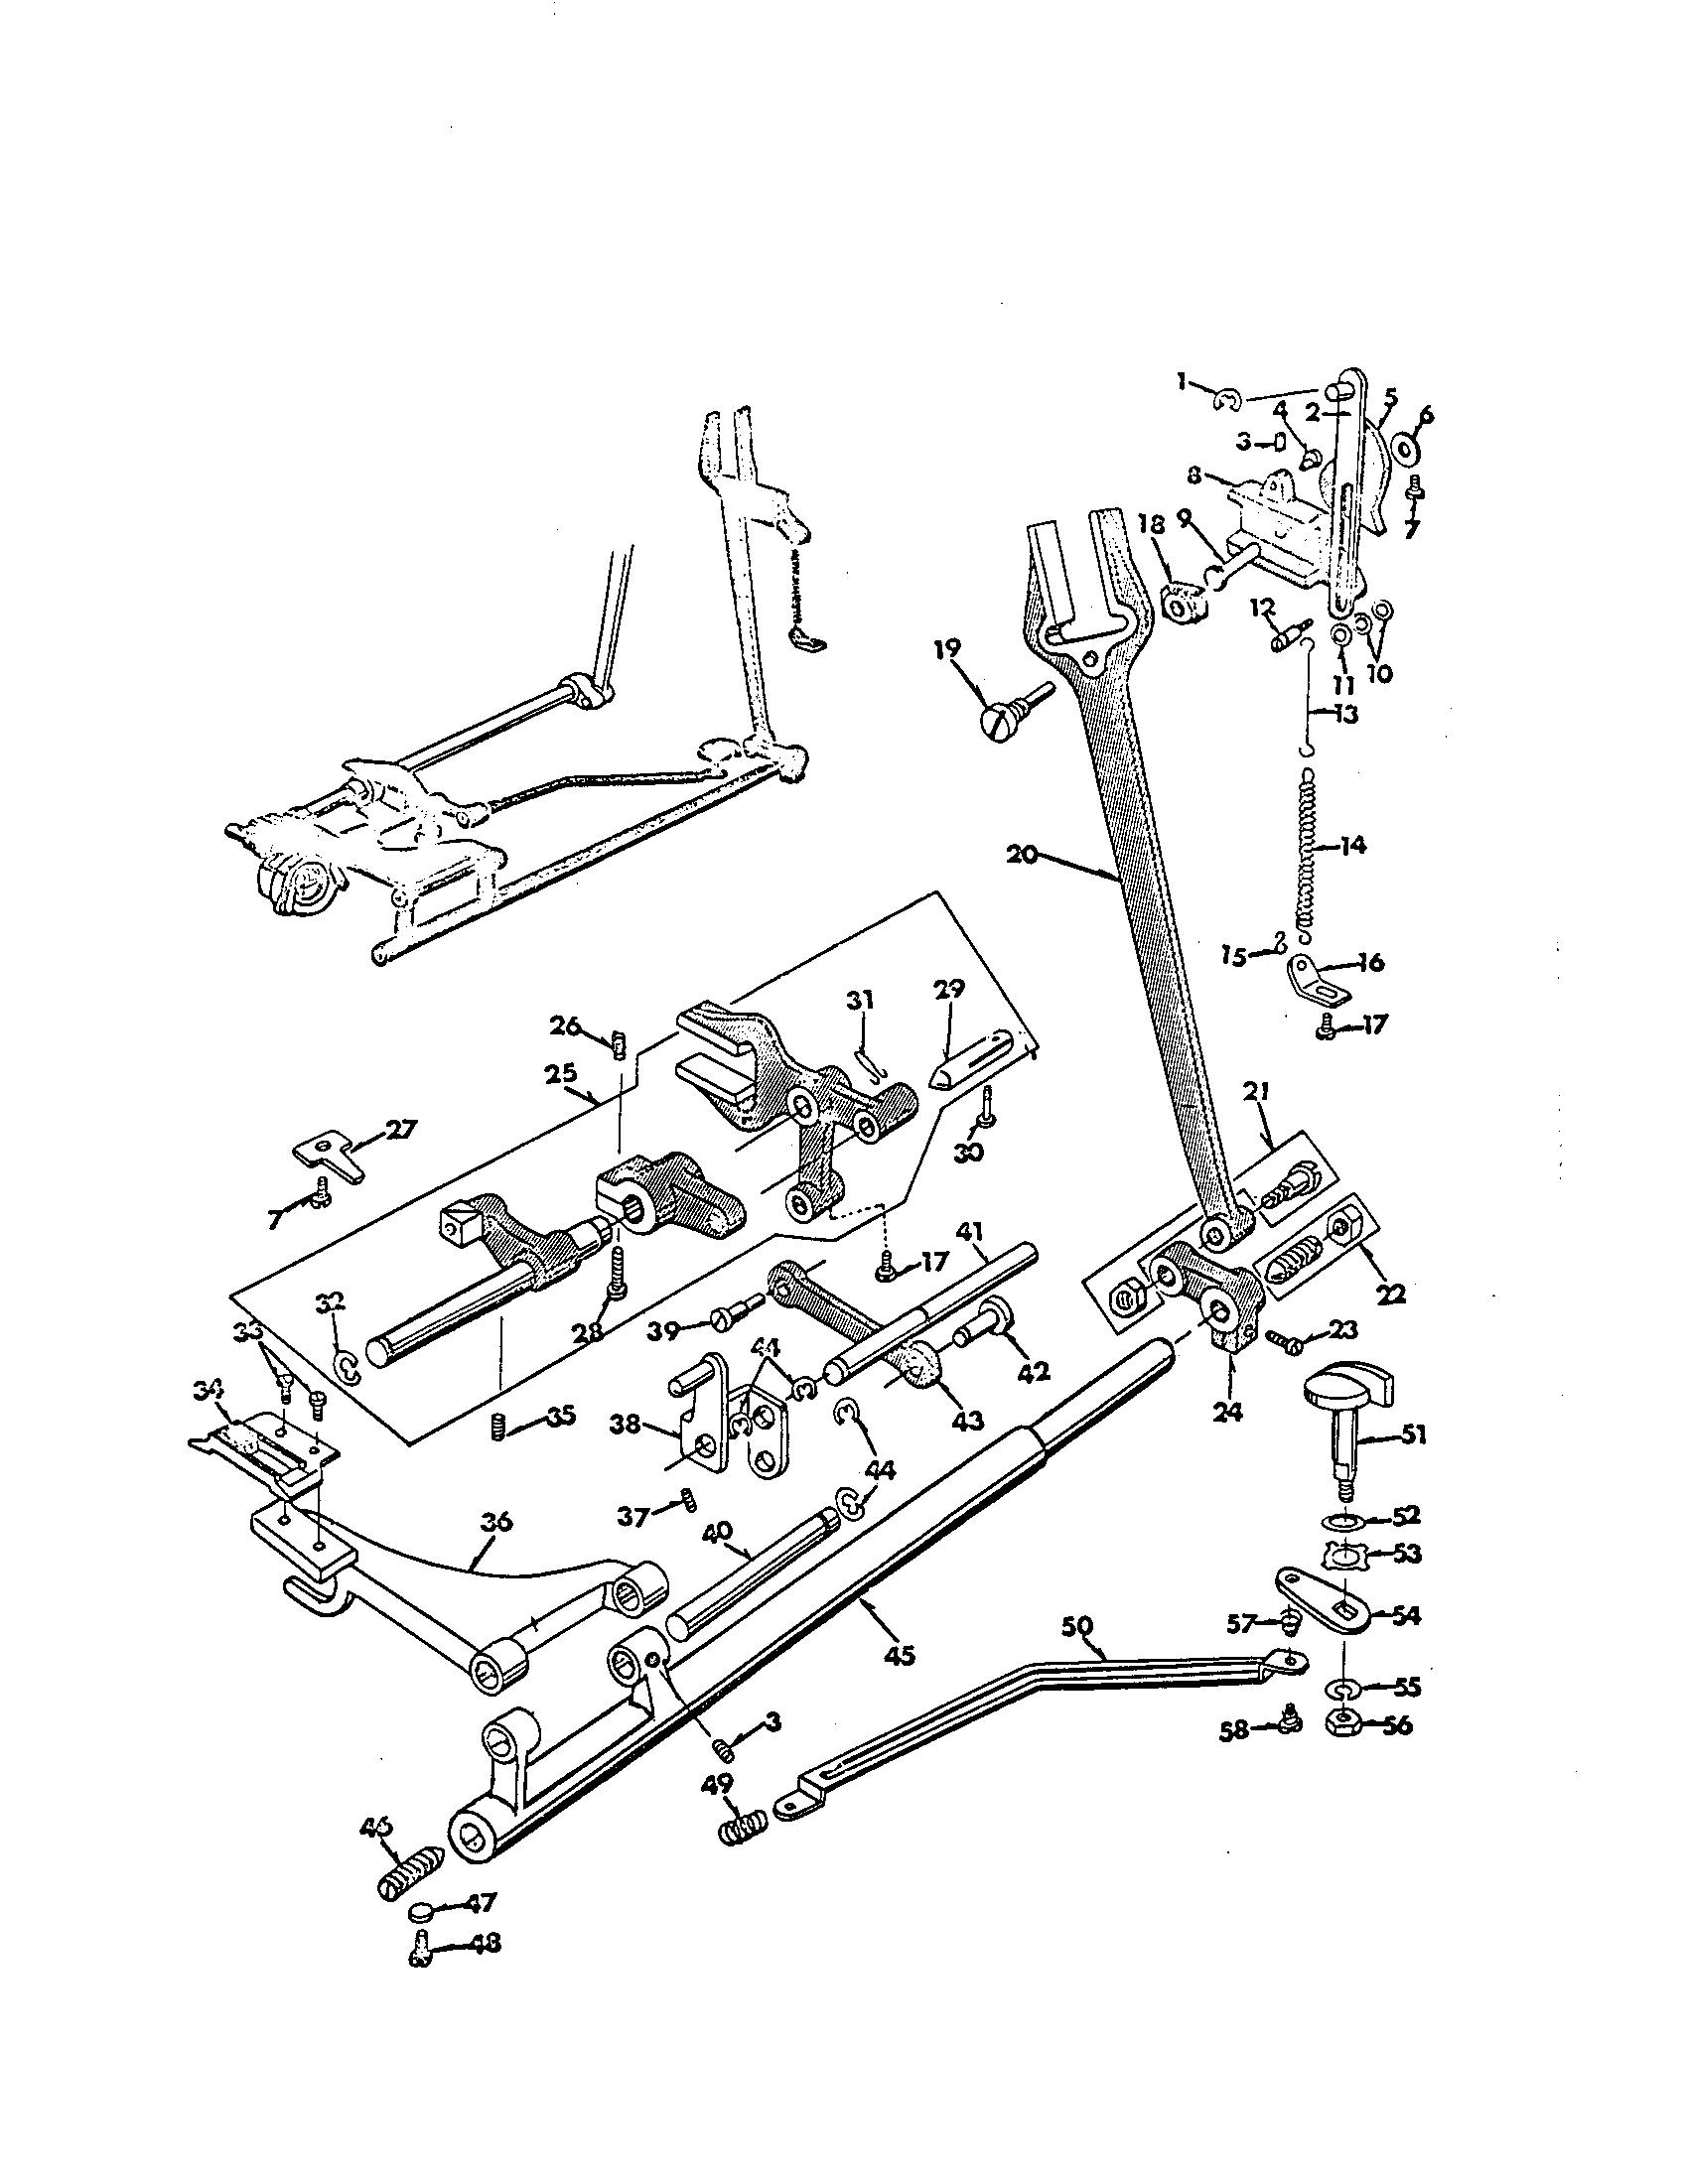 hight resolution of sewing pedal wiring diagram kenmore